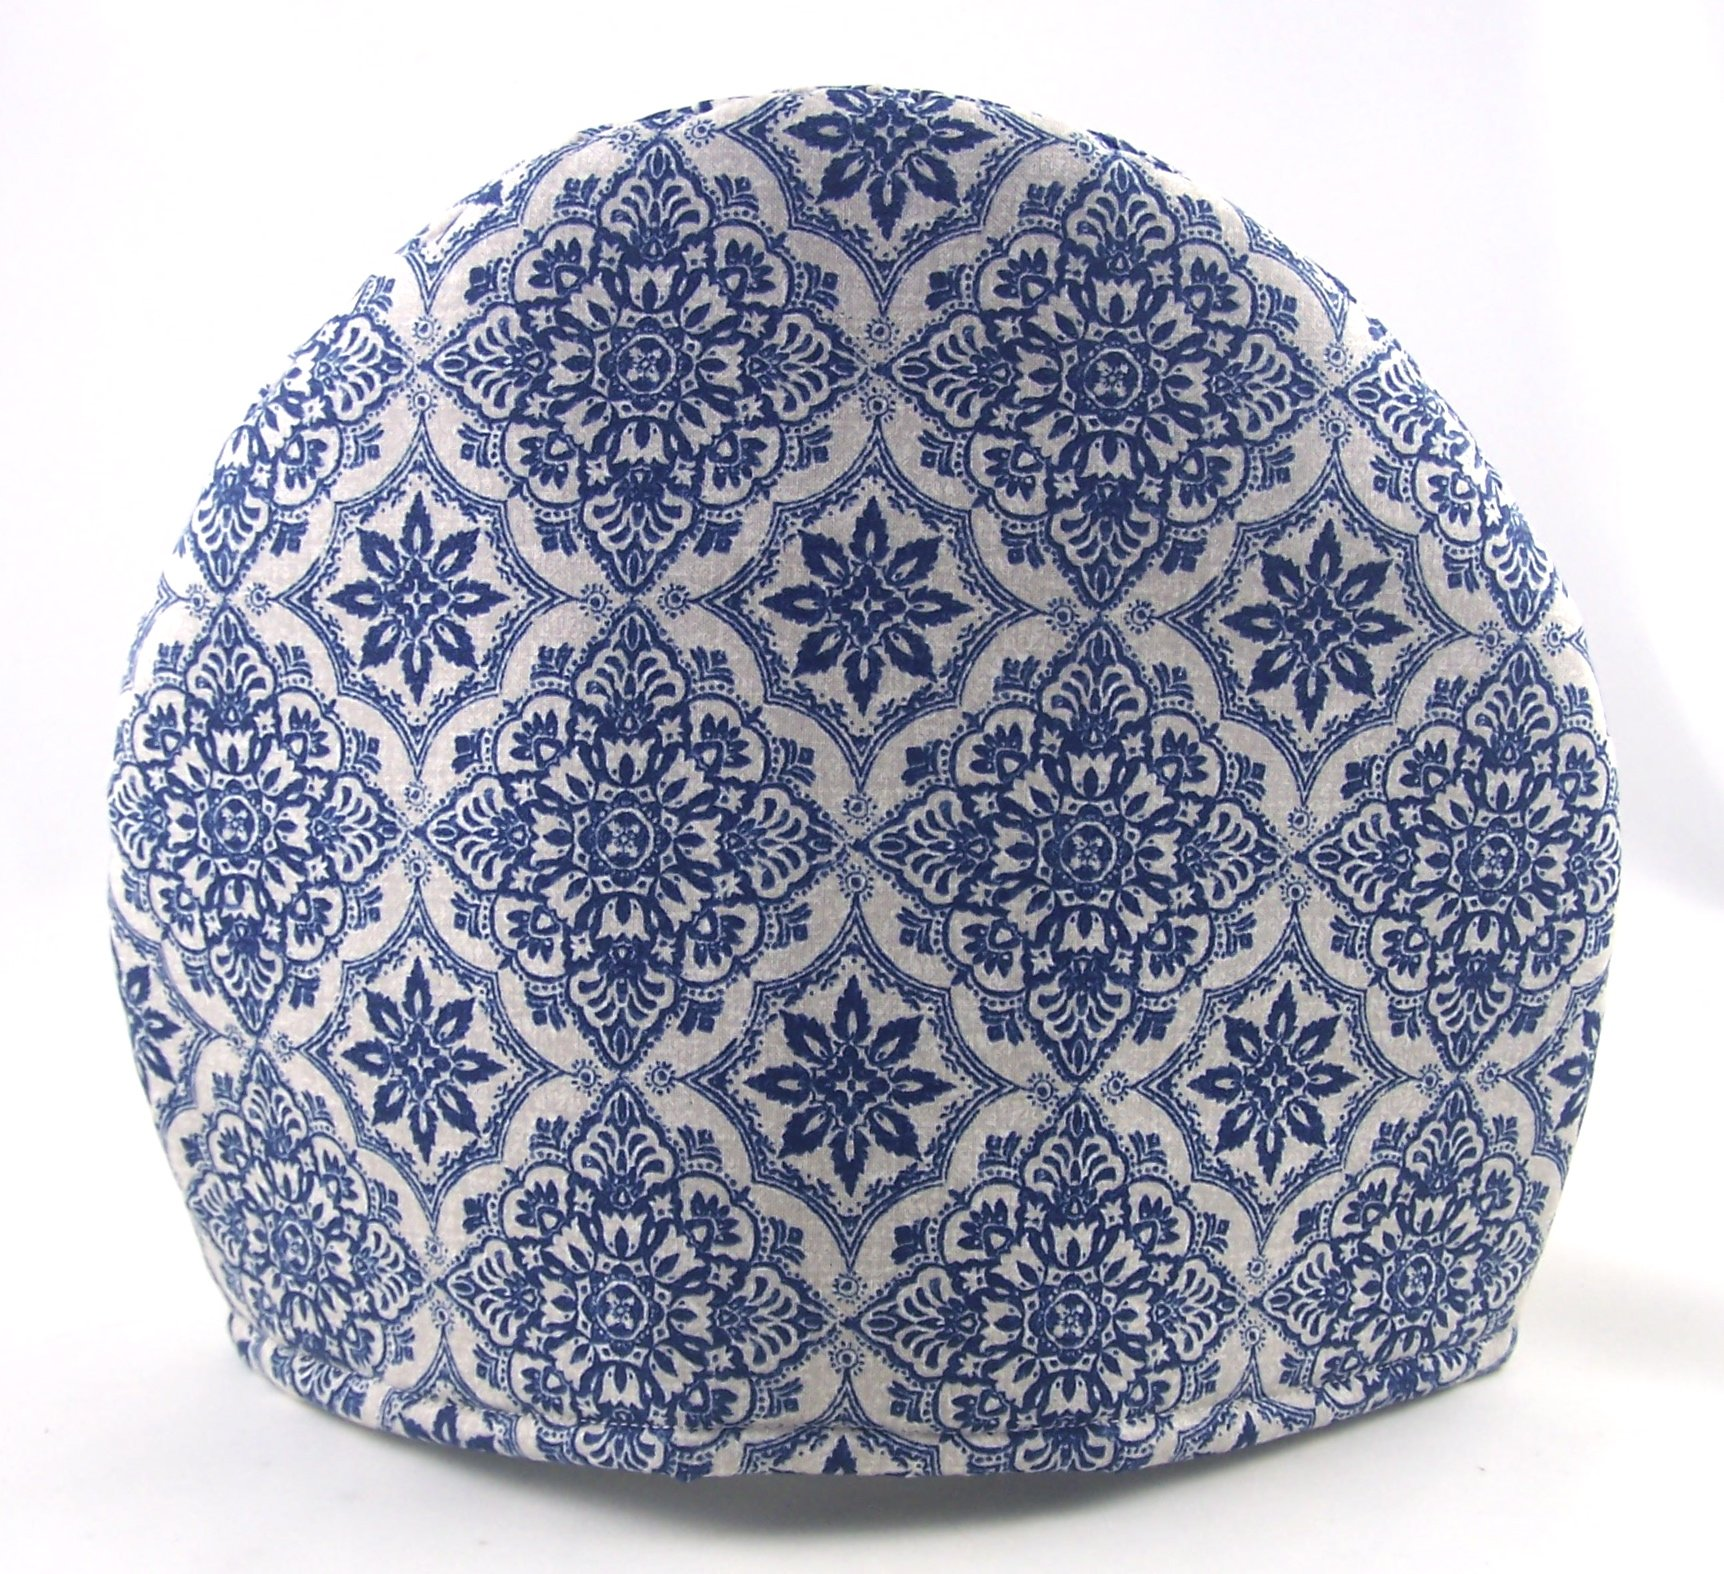 Handmade Fabric Tea Cozy - Lined and Padded Cosy - Blue and Antique White French Toile Print